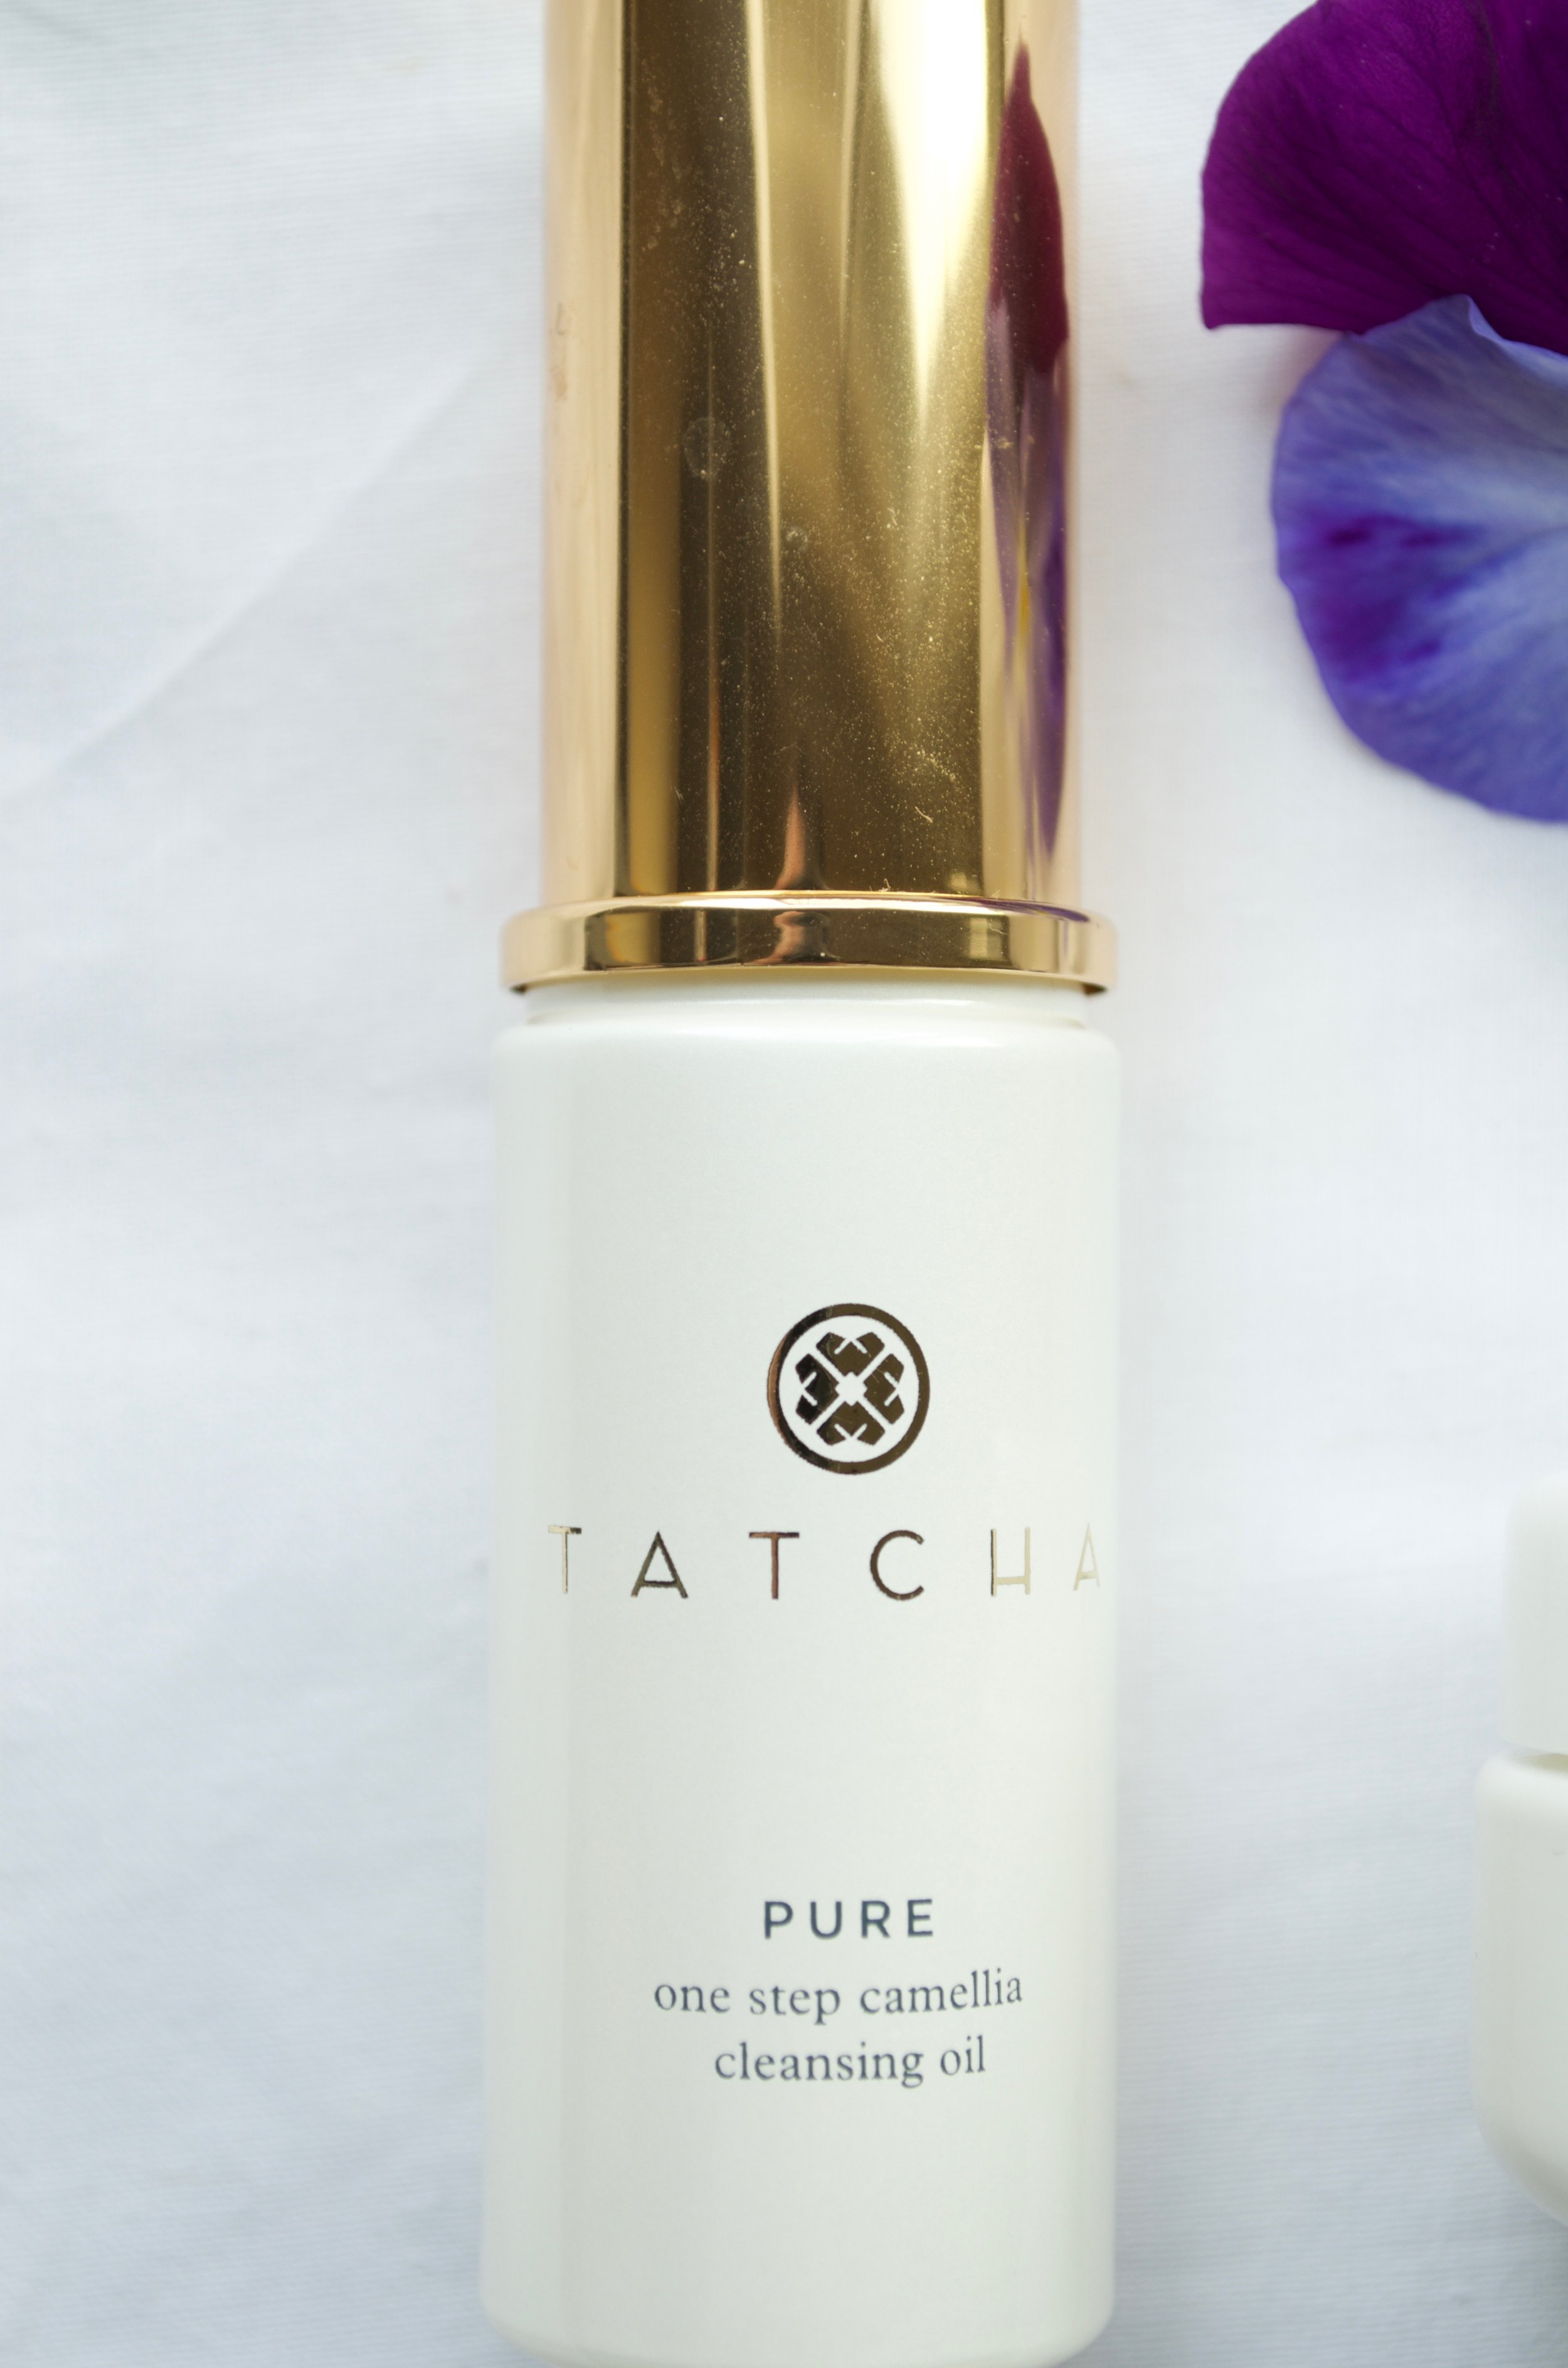 Pure One Step Camellia Cleansing Oil by Tatcha #8